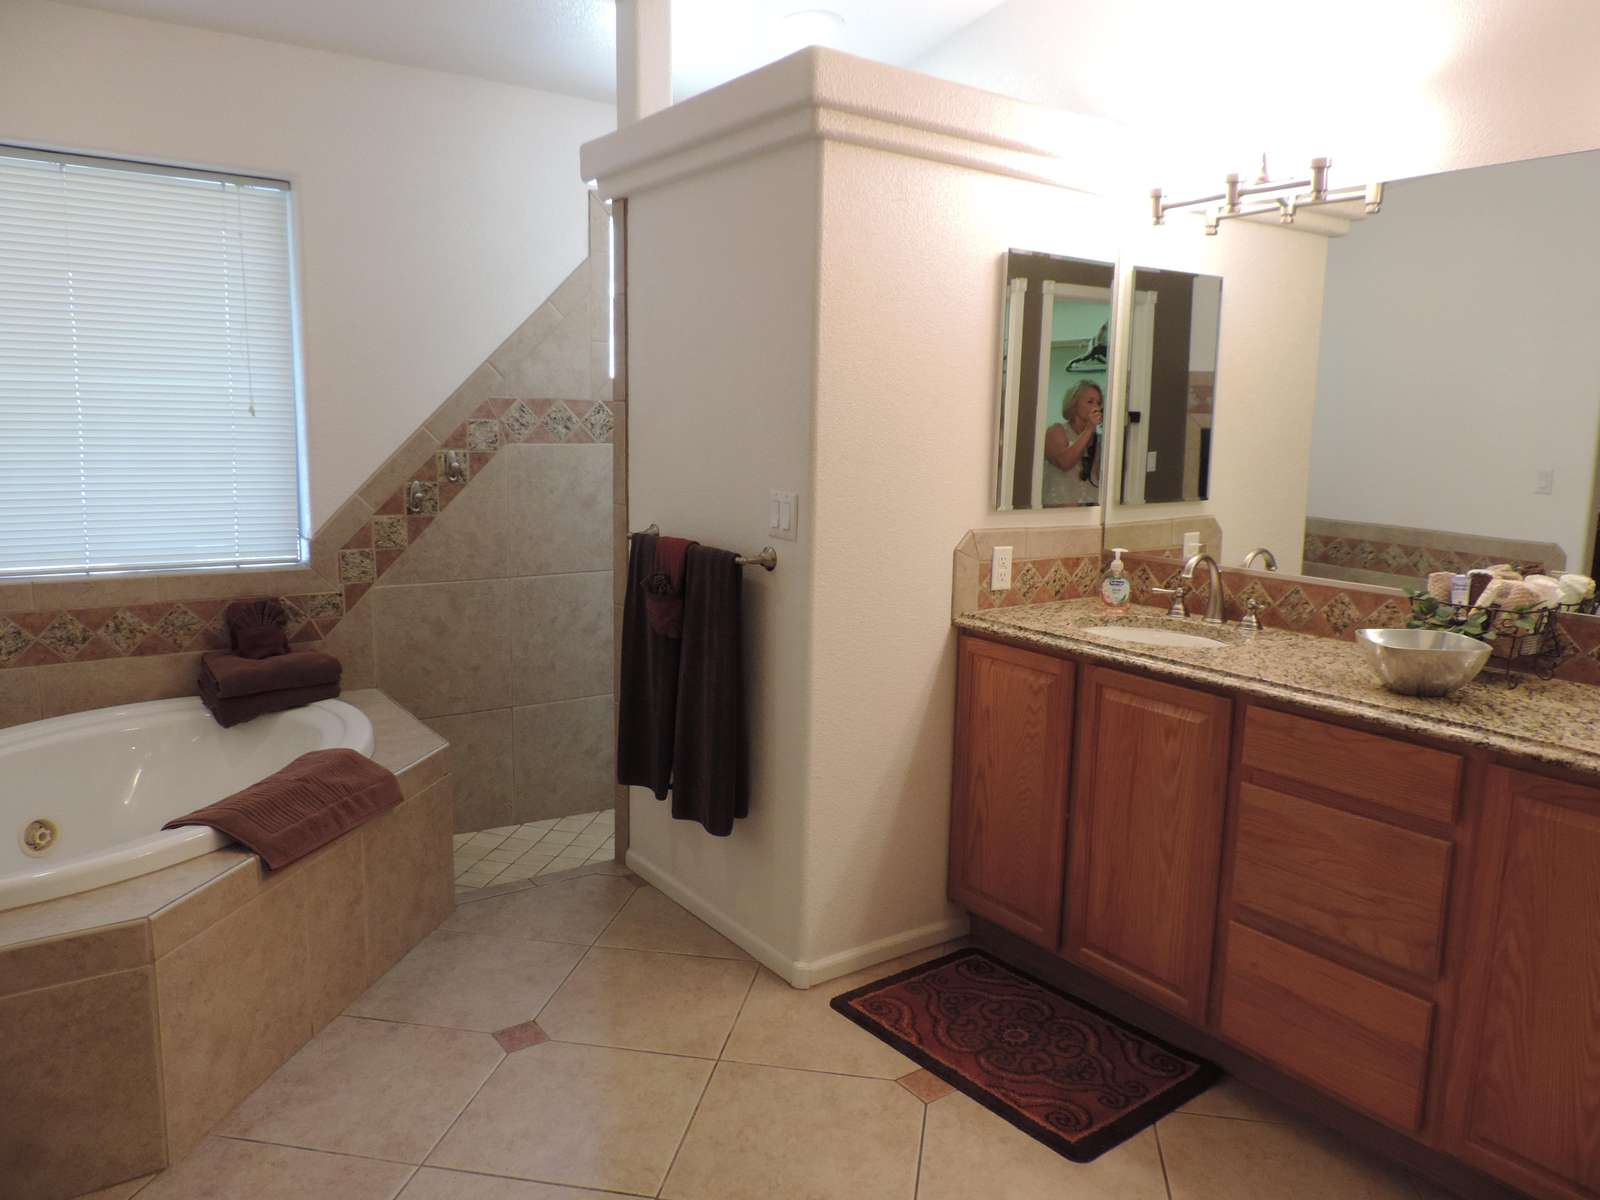 Full master bathroom has Jacuzzi tug and snail shower